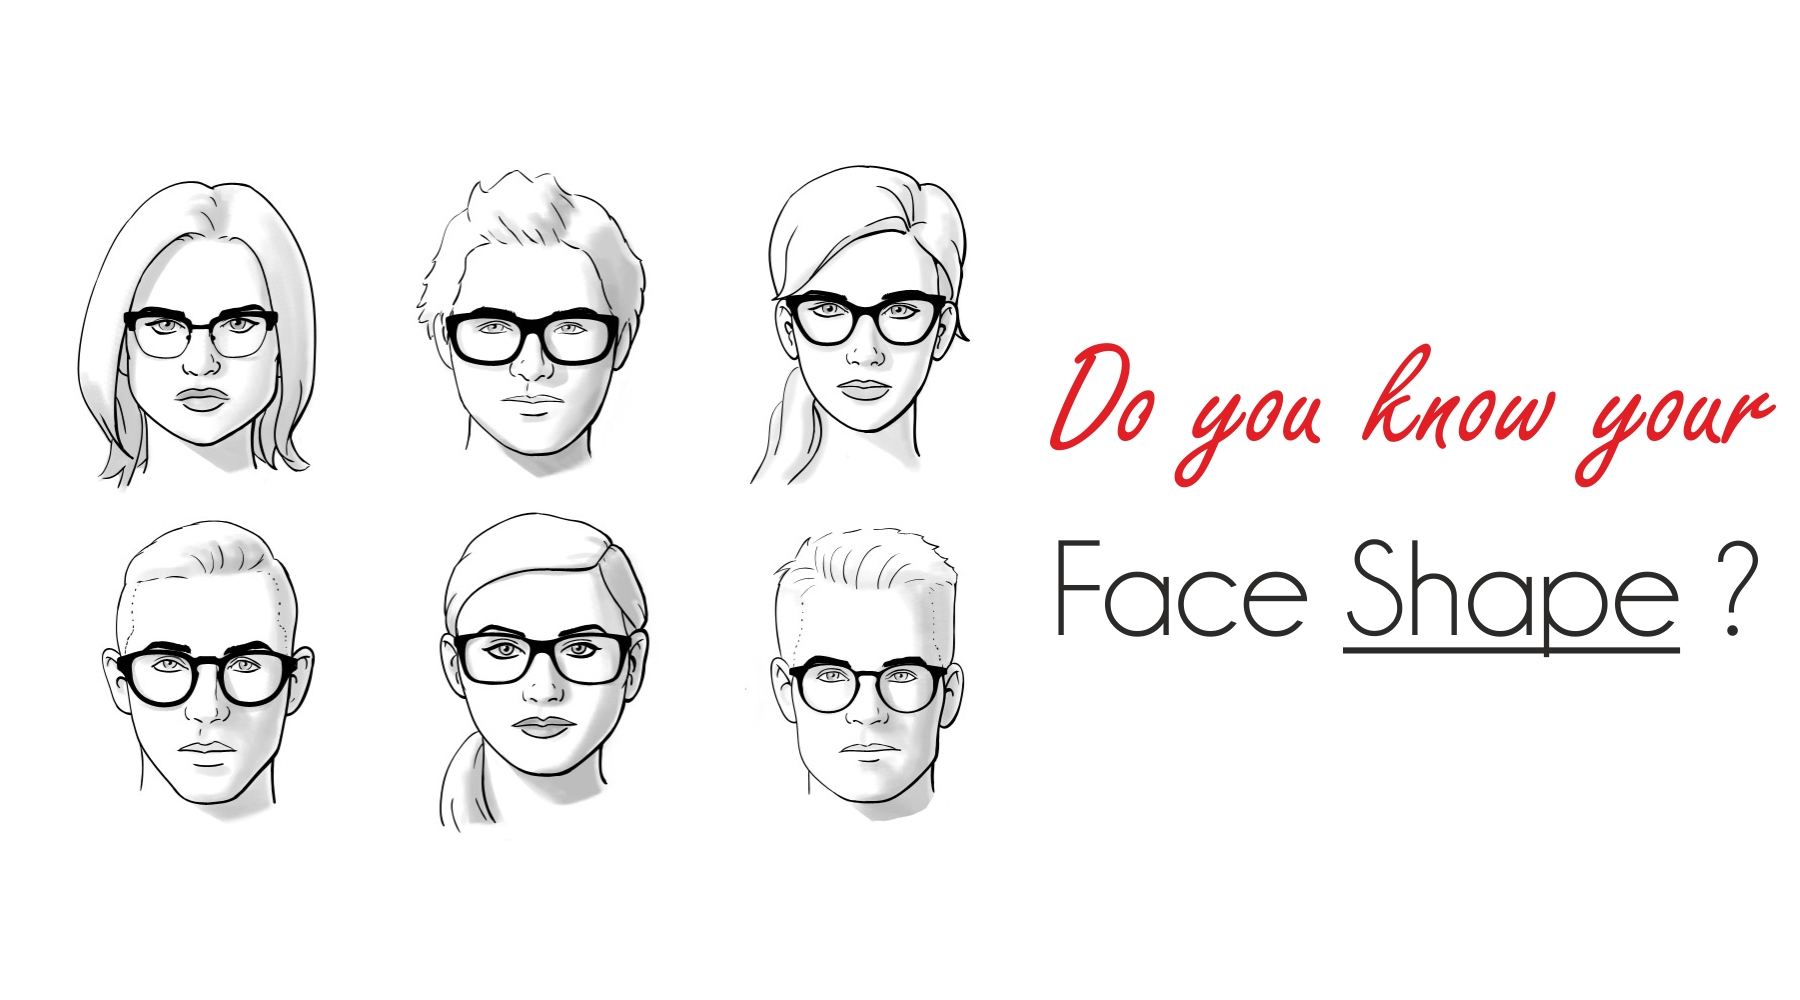 how to determine face shape Find your face shape in just four easy steps your face shape is the simplest tool to have in order to use fashion to compliment your features.